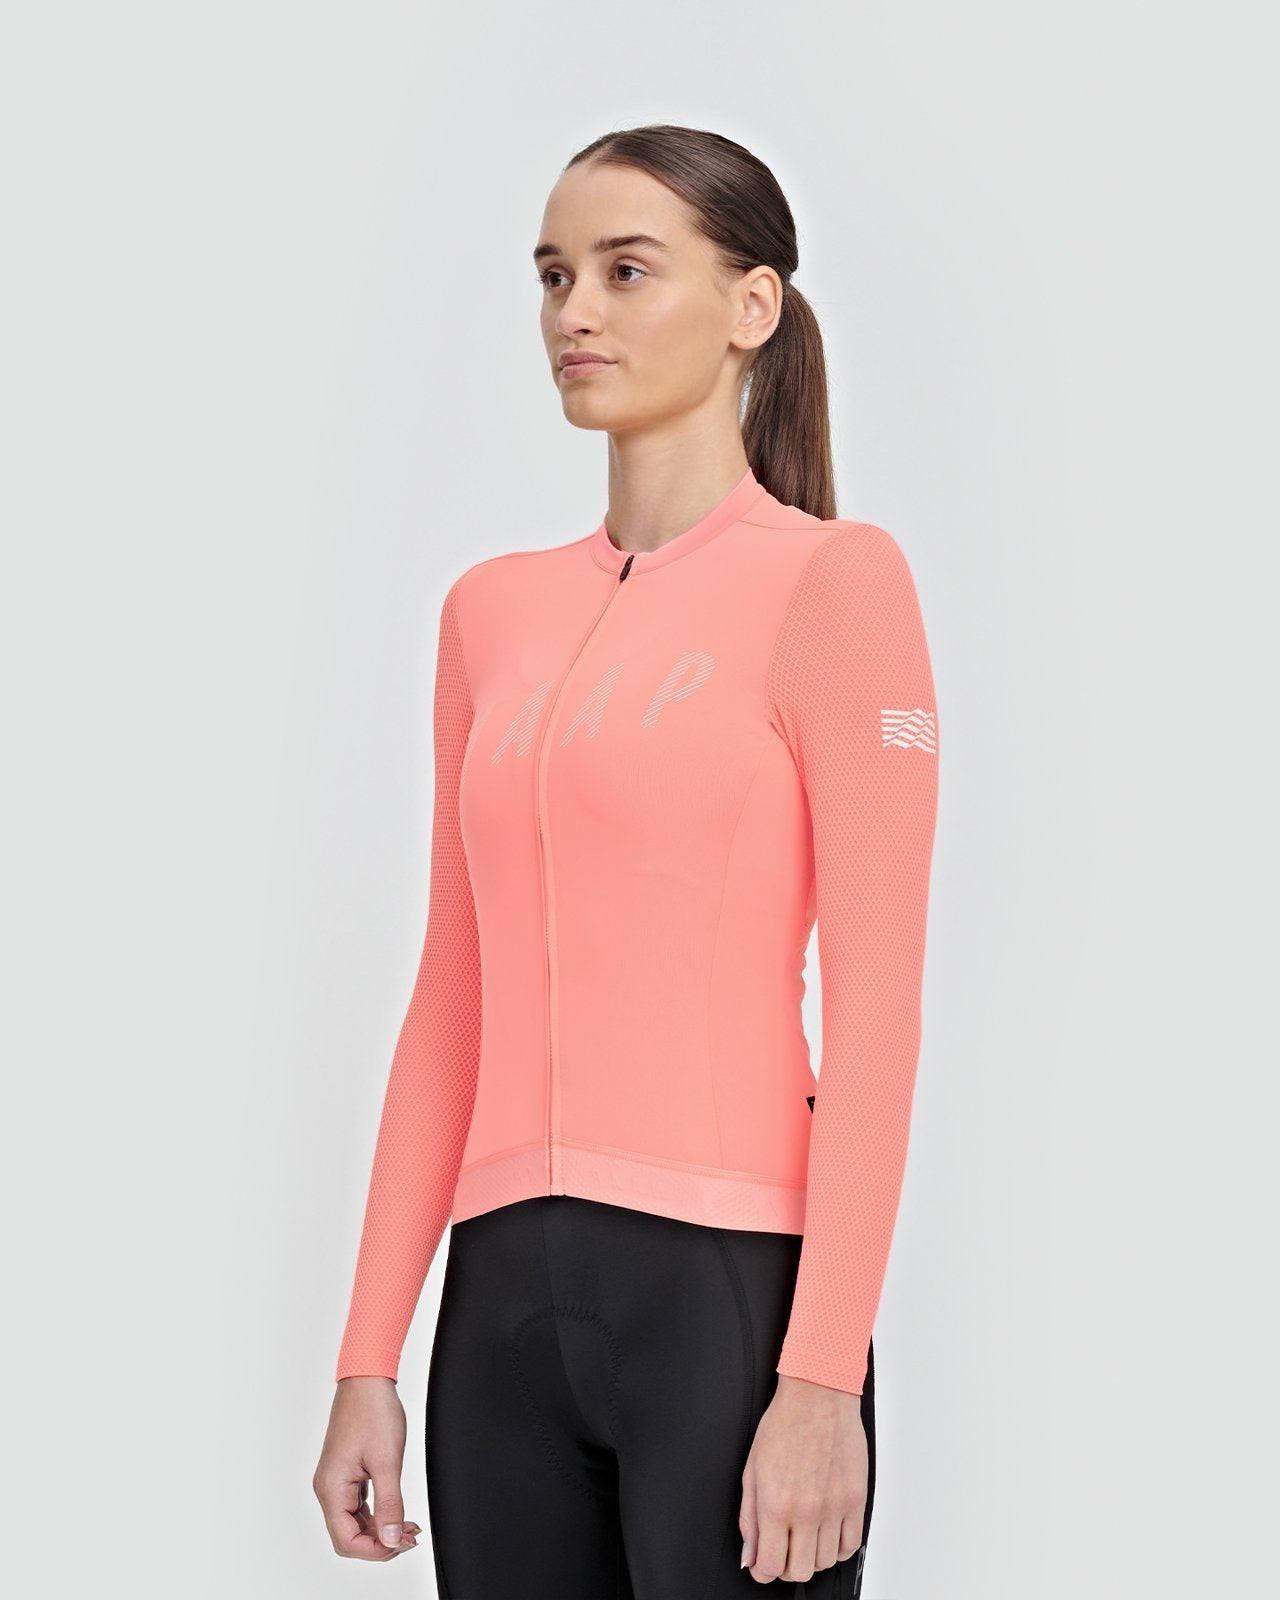 MAAP Women's Echo Pro Base LS Jersey - Light Coral Cycling Jersey MAAP